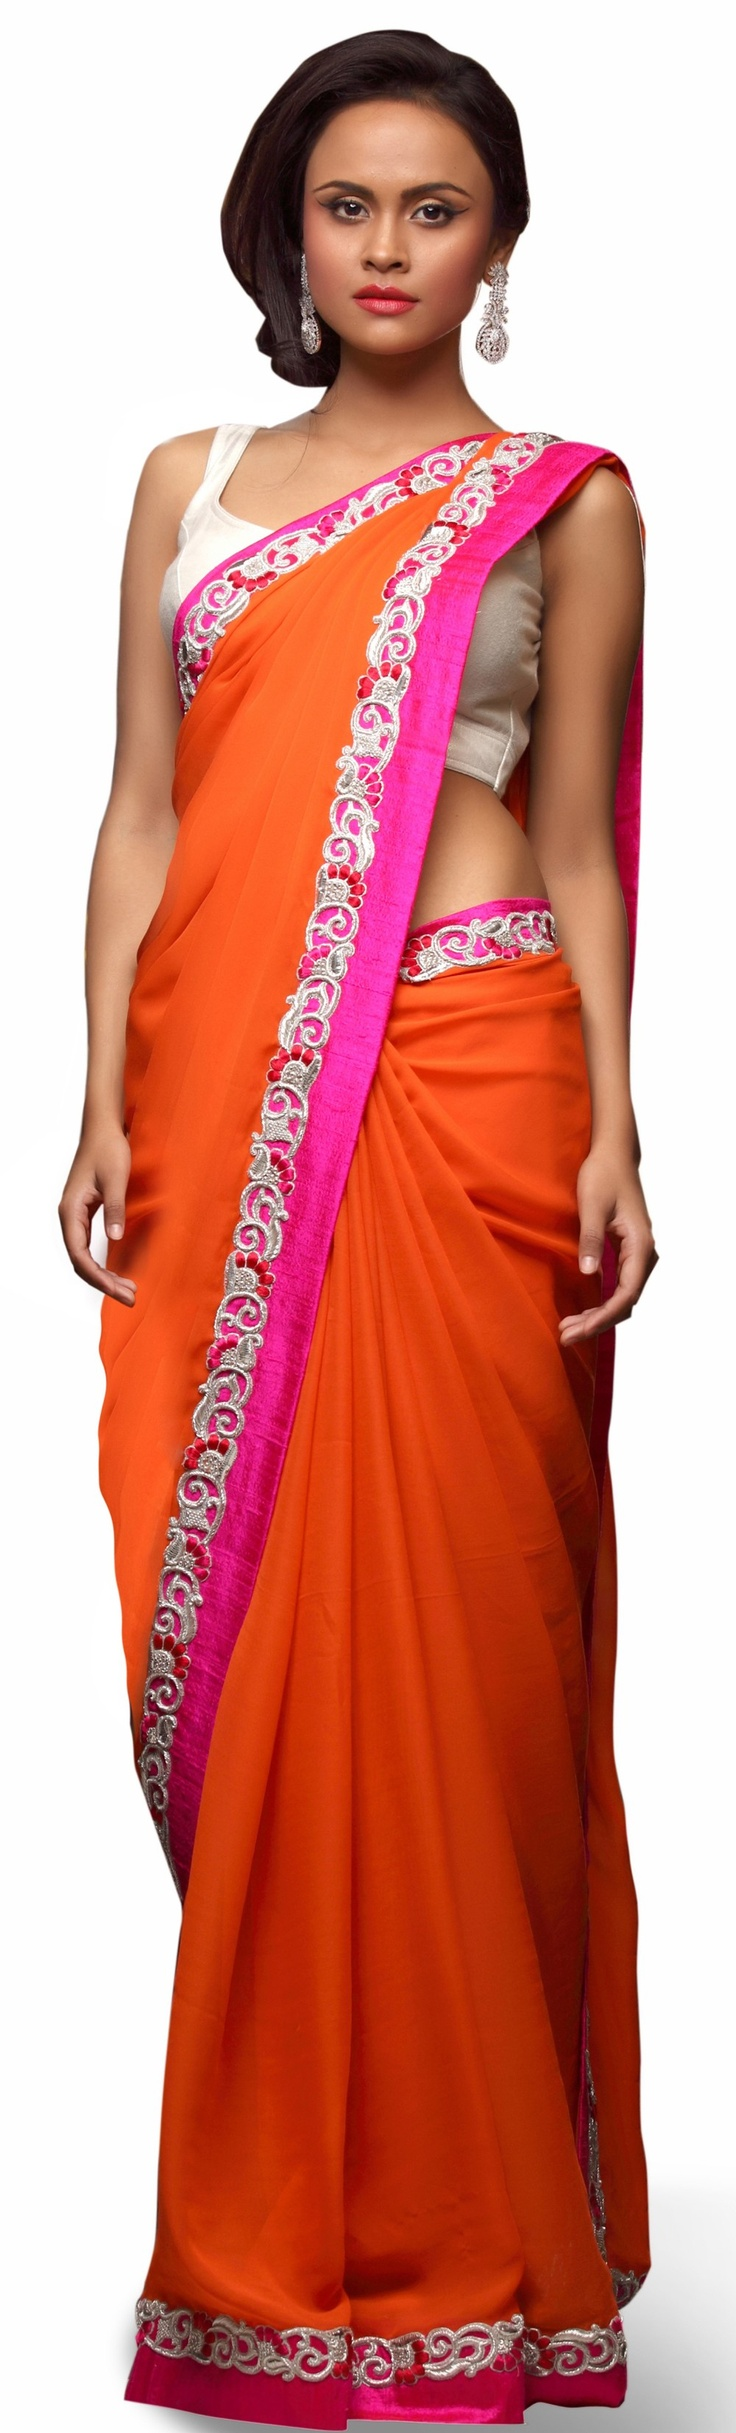 The sari - the traditional fashion for mature South Asian women, especially in India.